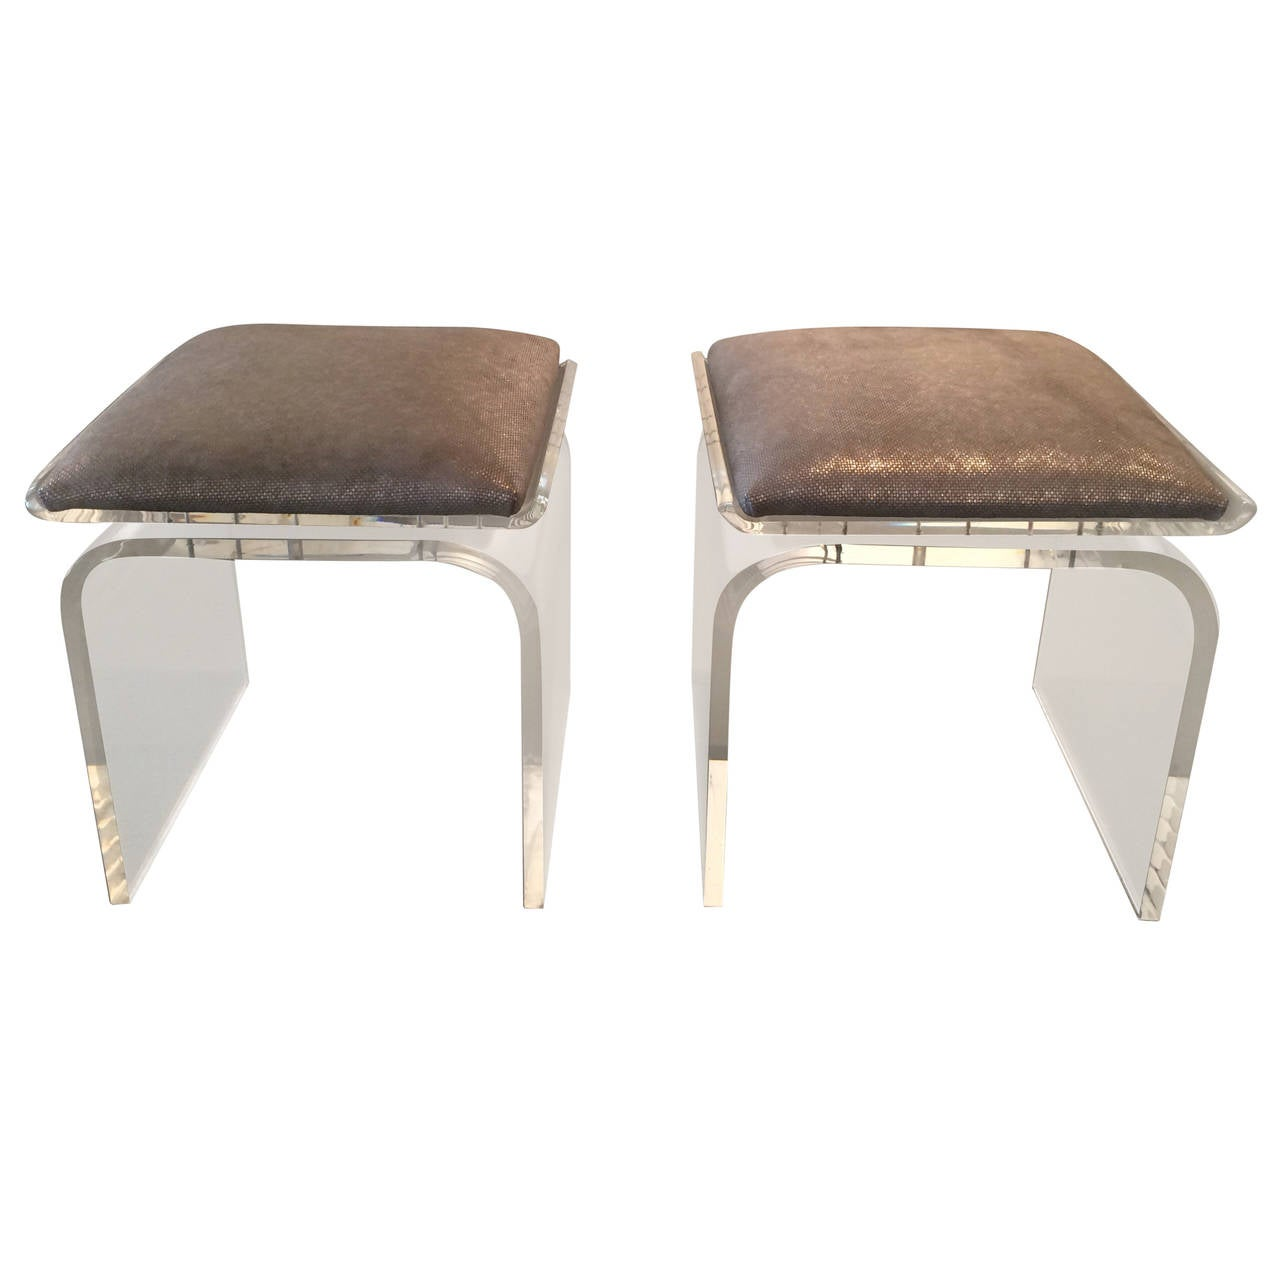 Pair Of Swivel Top Acrylic Quot Waterfall Quot Stools By Charles